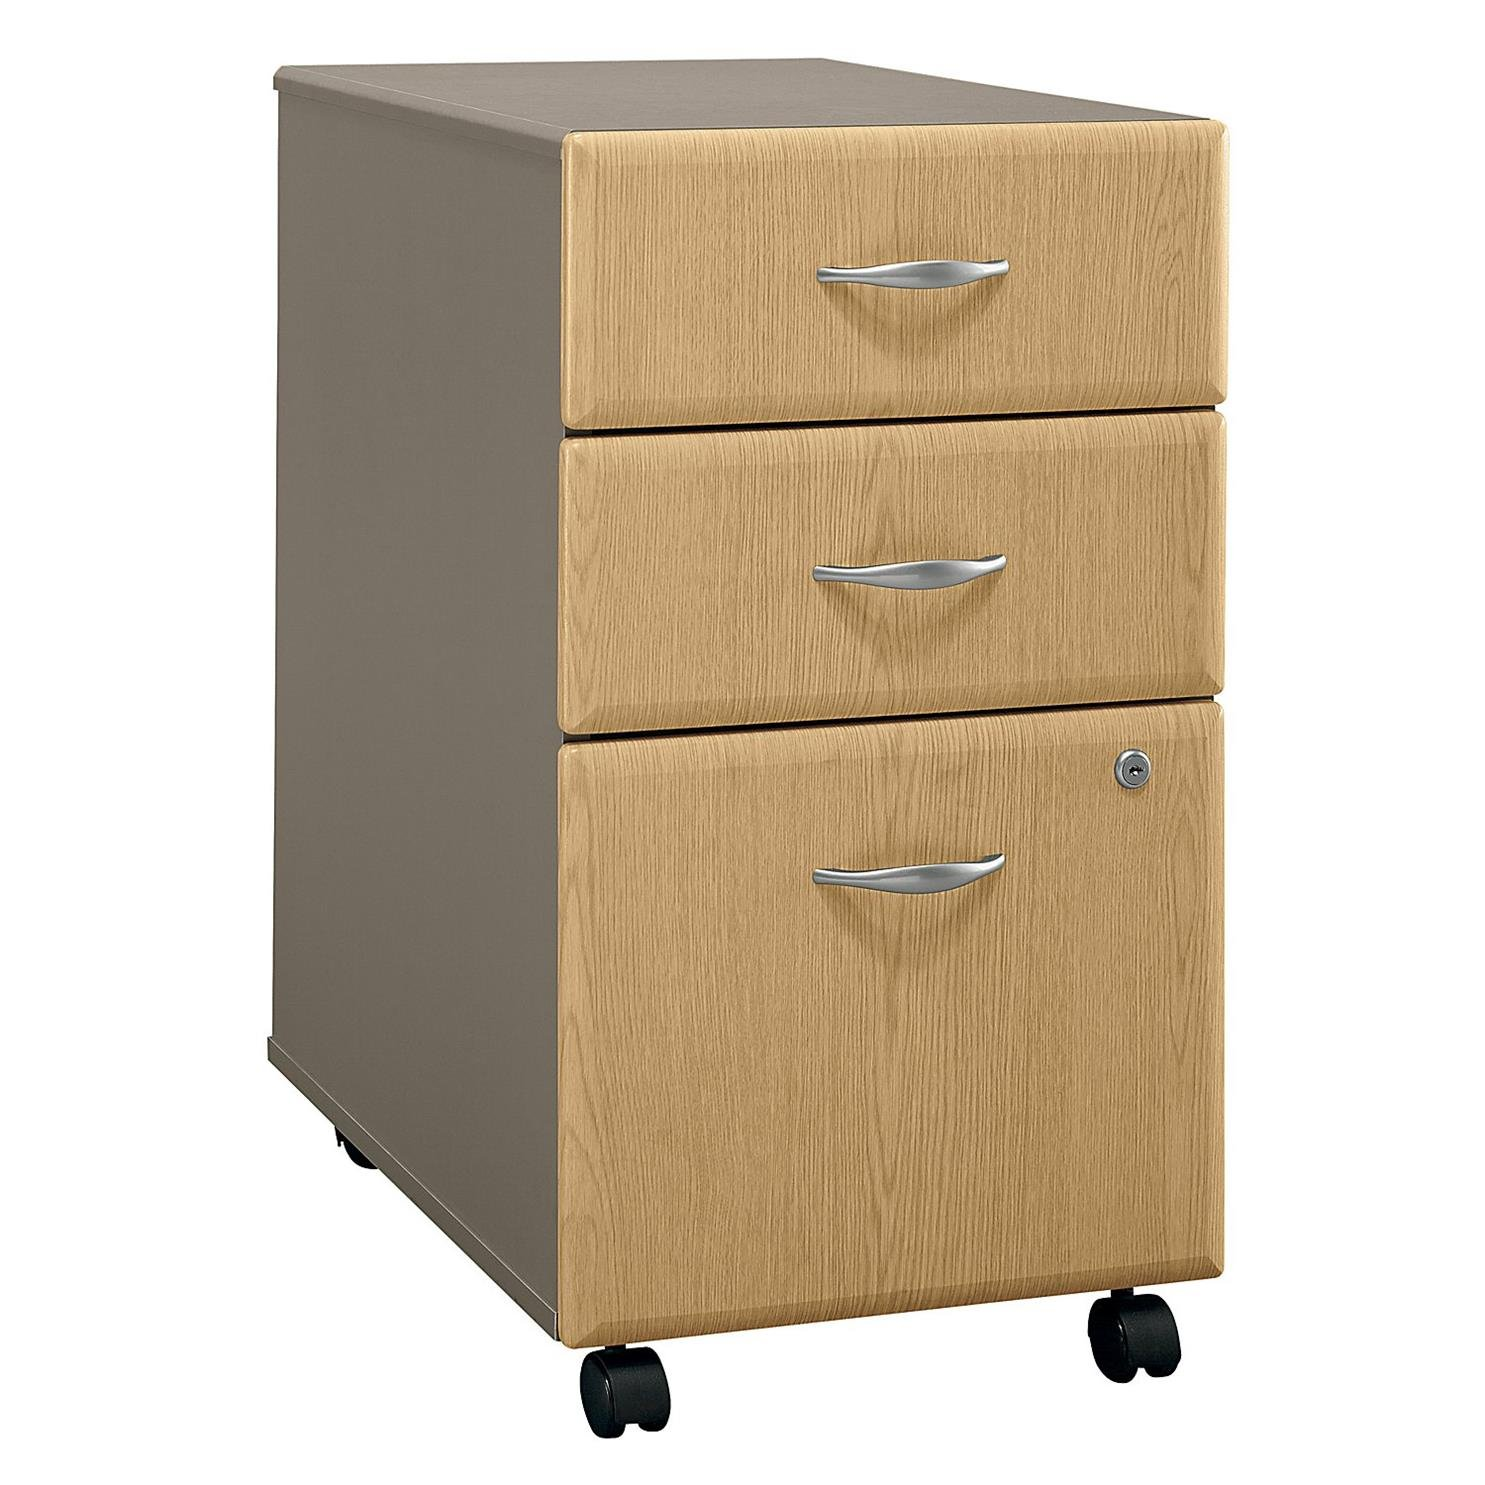 SERIES A:3 DRAWER FILE